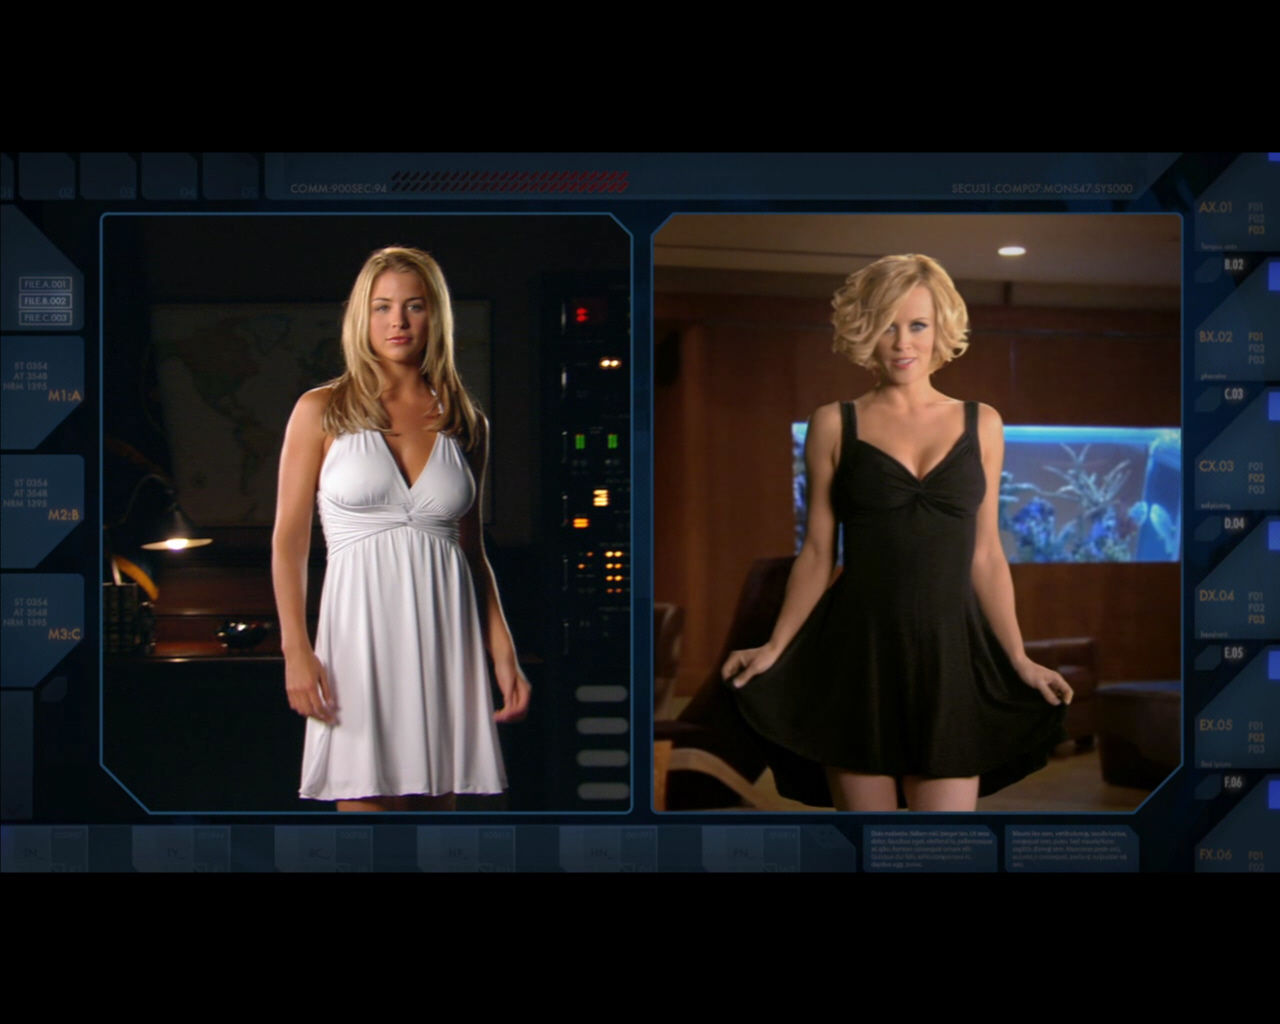 Command & Conquer: Red Alert 3 Windows Gemma Atkinson (as Eva) and Jenny McCarthy (as Tanya).